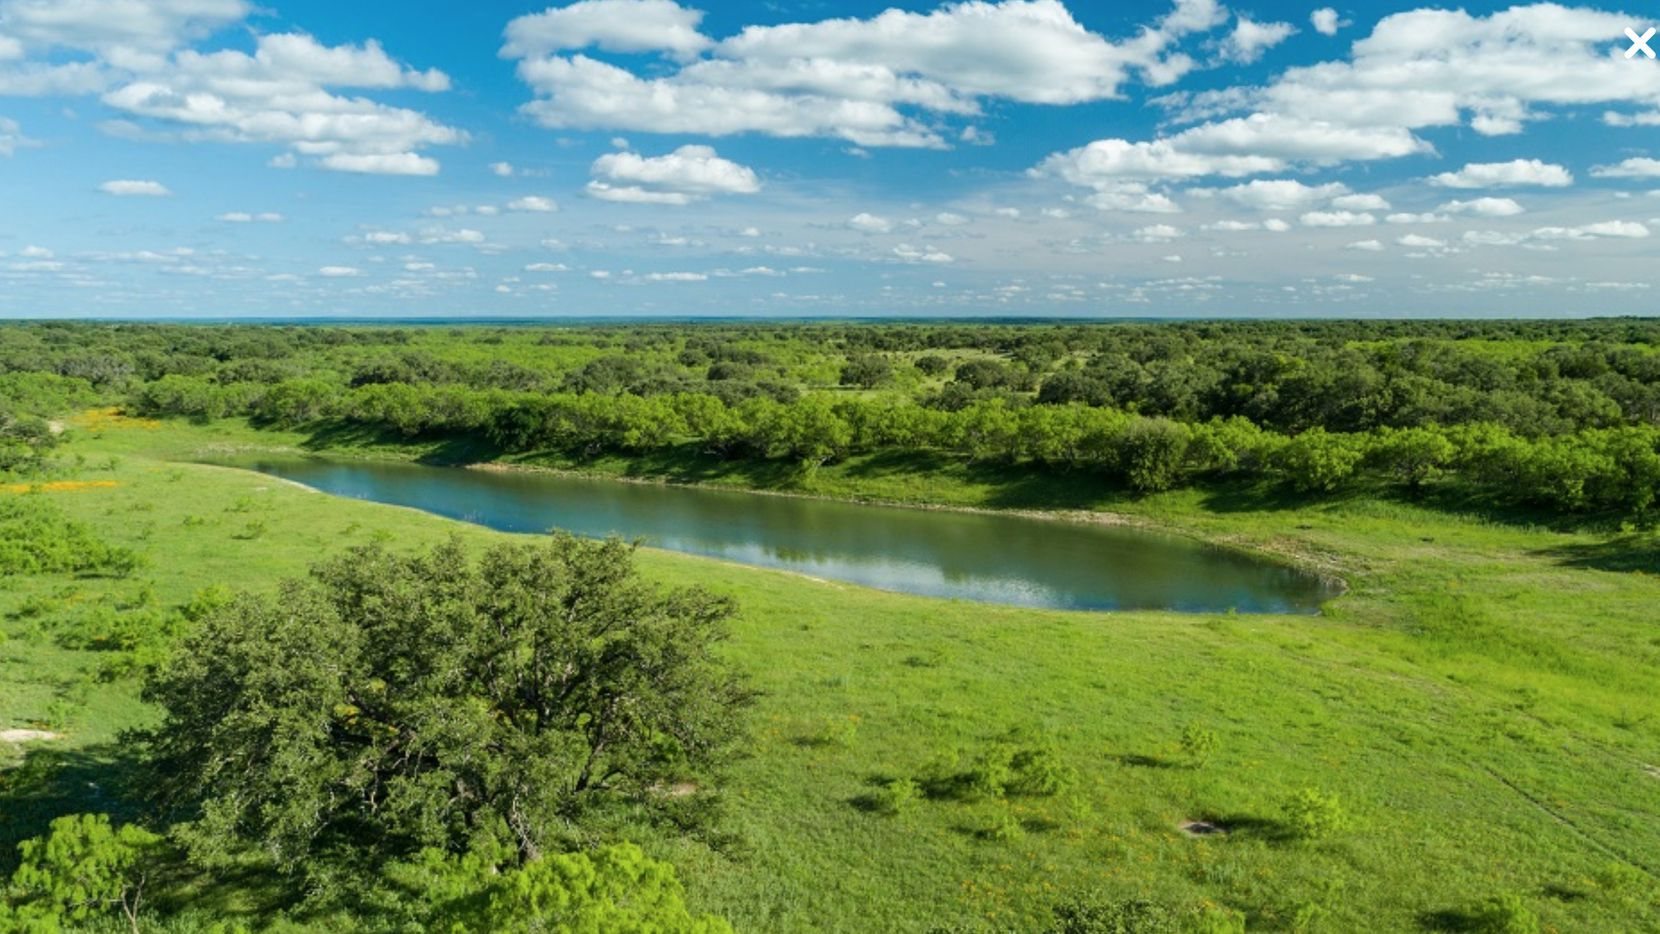 Huge Central Texas ranch for sale covers 50 square miles